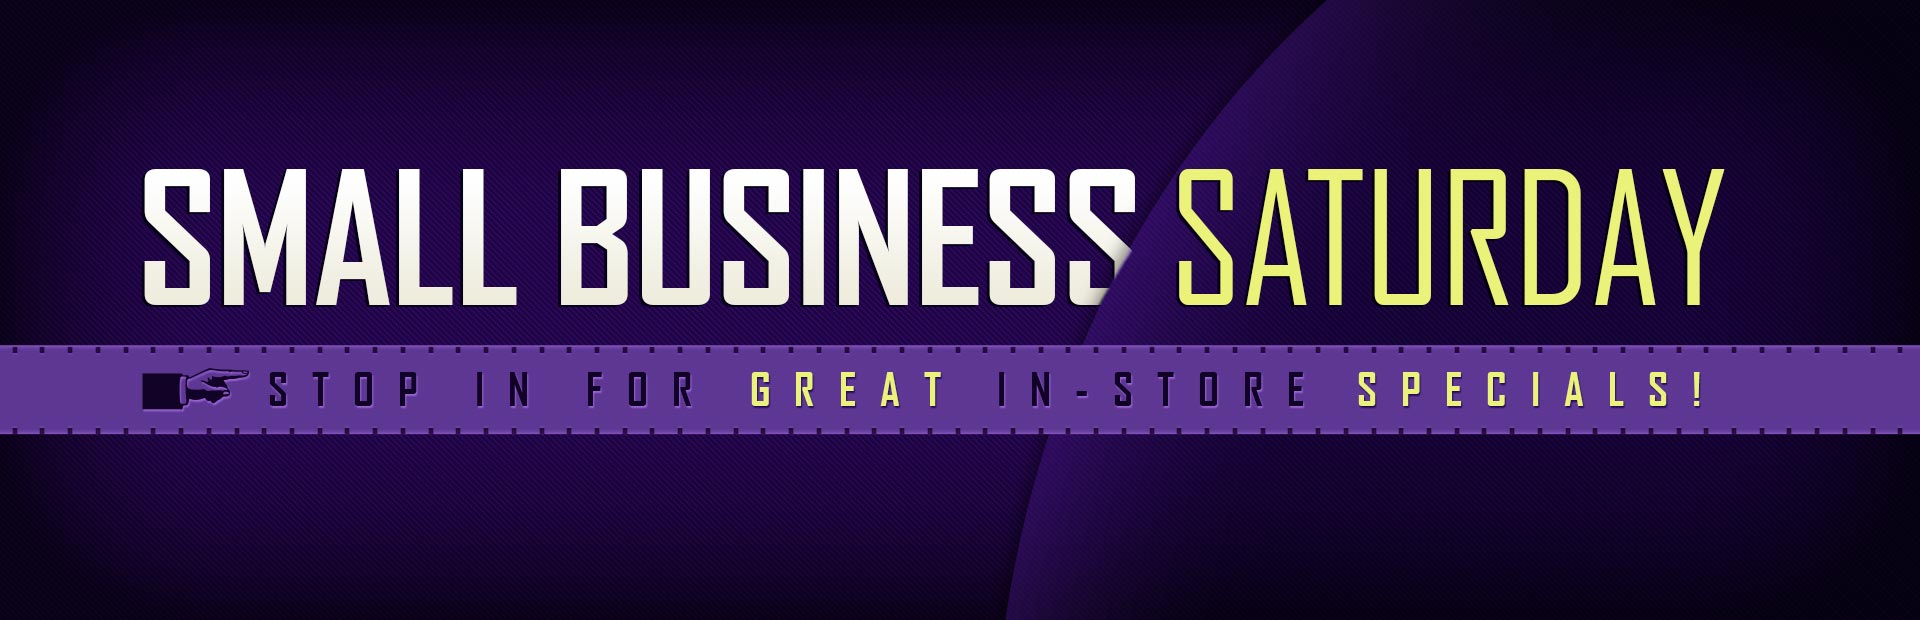 Stop in for great in-store specials on Small Business Saturday.